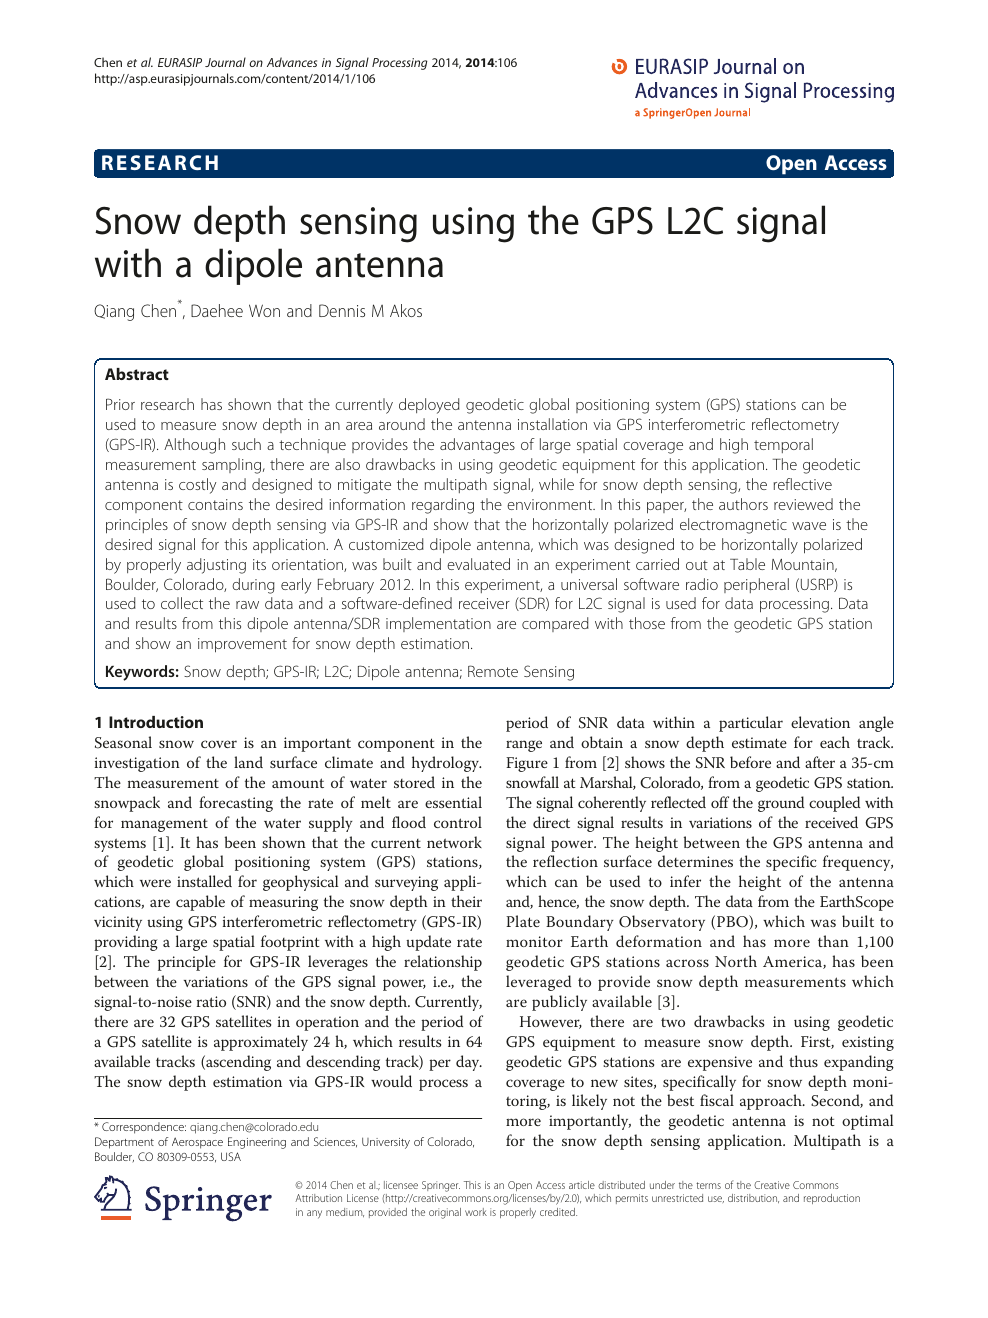 Snow depth sensing using the GPS L2C signal with a dipole antenna